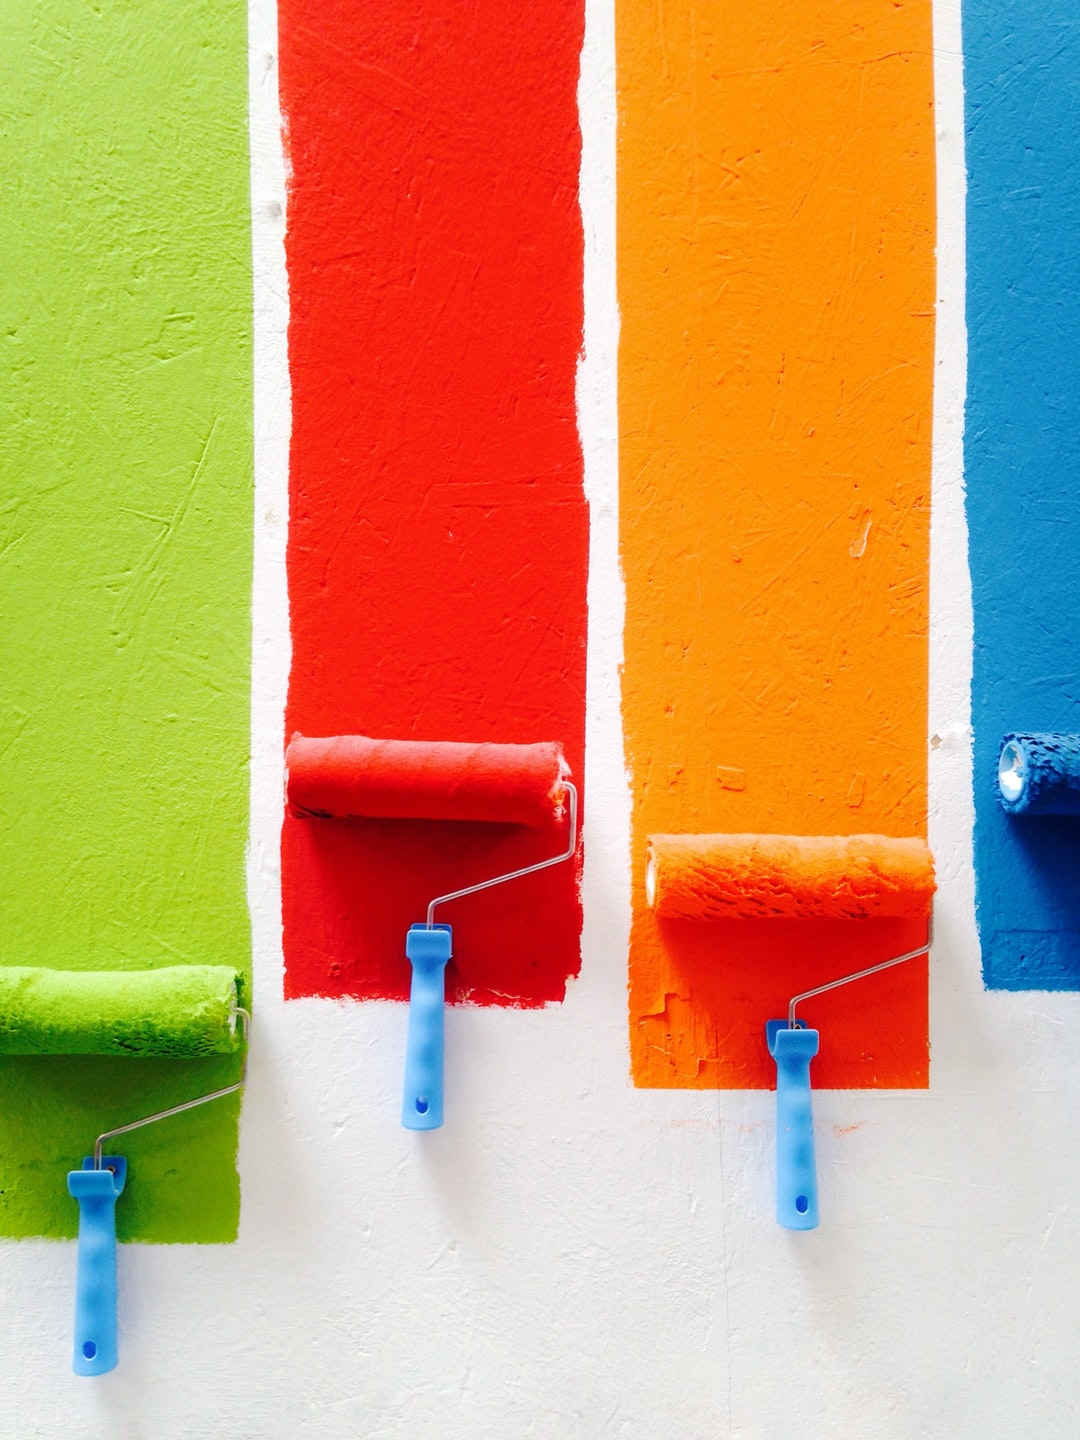 How Long Does It Take to Paint a Room in Your Home?